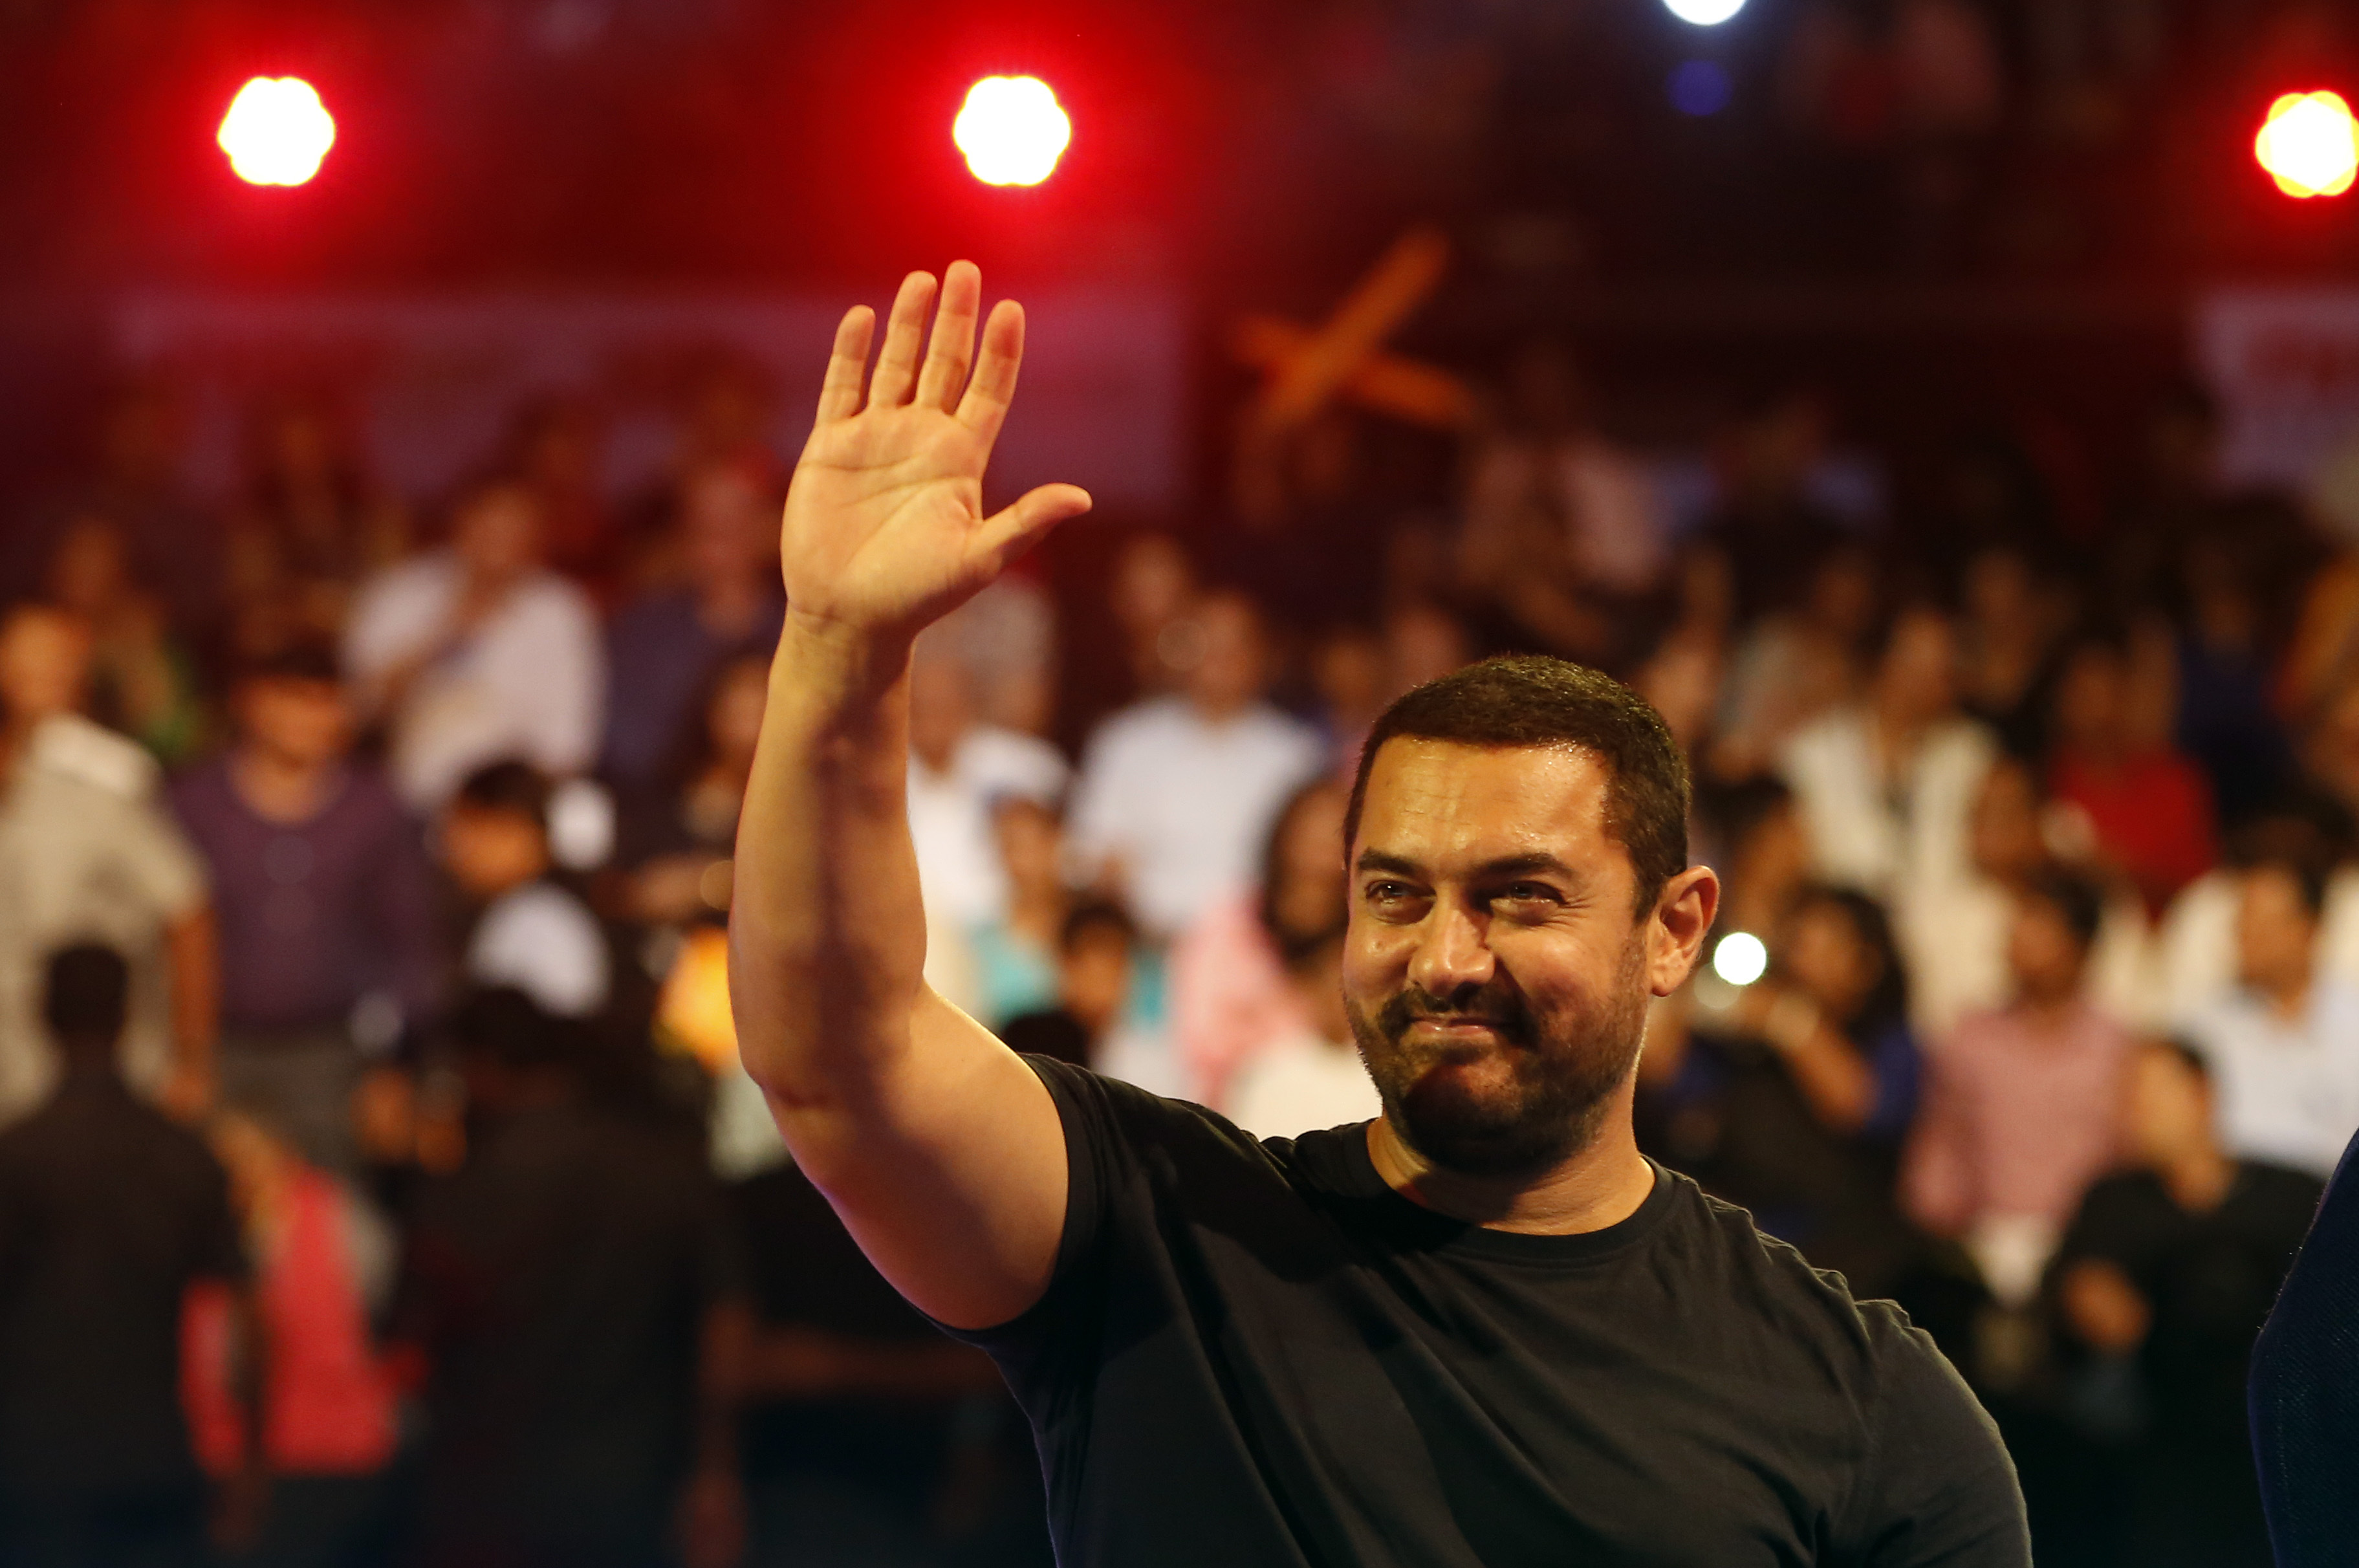 Bollywood actor Aamir Khan waves to the crowd as he attends the inaugural session of Pro Kabaddi League 2015 in Mumbai on July 18, 2015